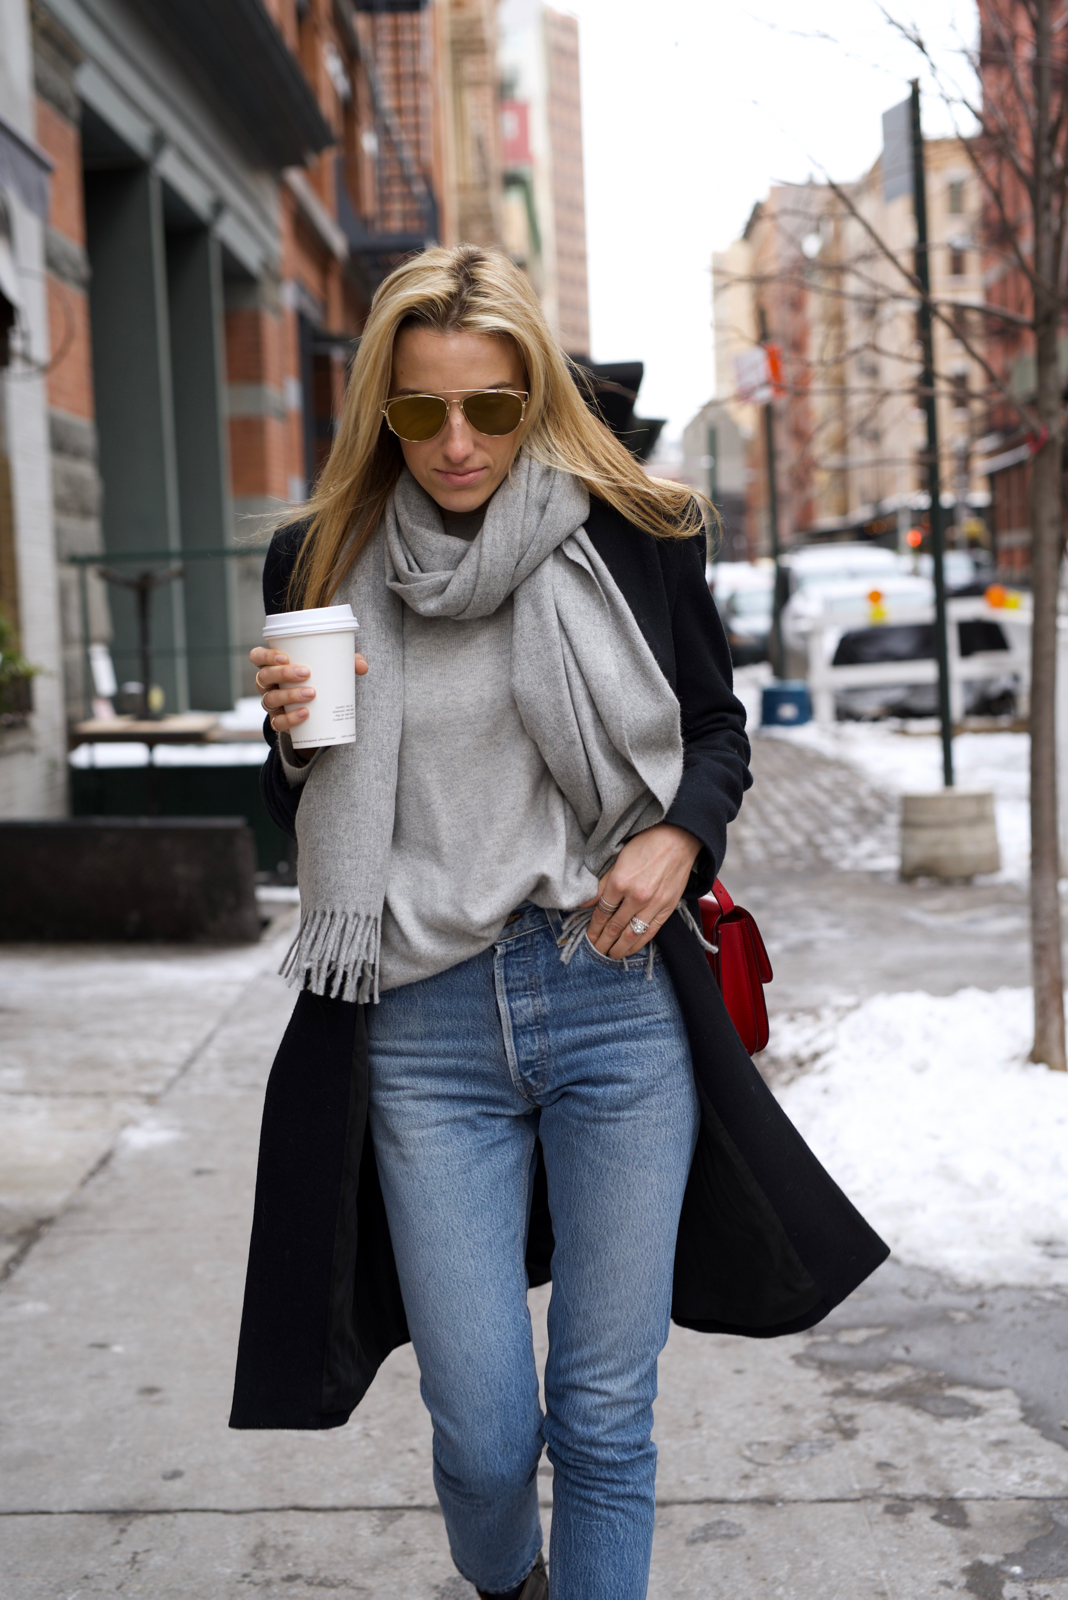 Acne Scarf, Coffe, Dior Sunglasses, Re/Done Jeans, Vintage Levis, Black Coat, Celine bag